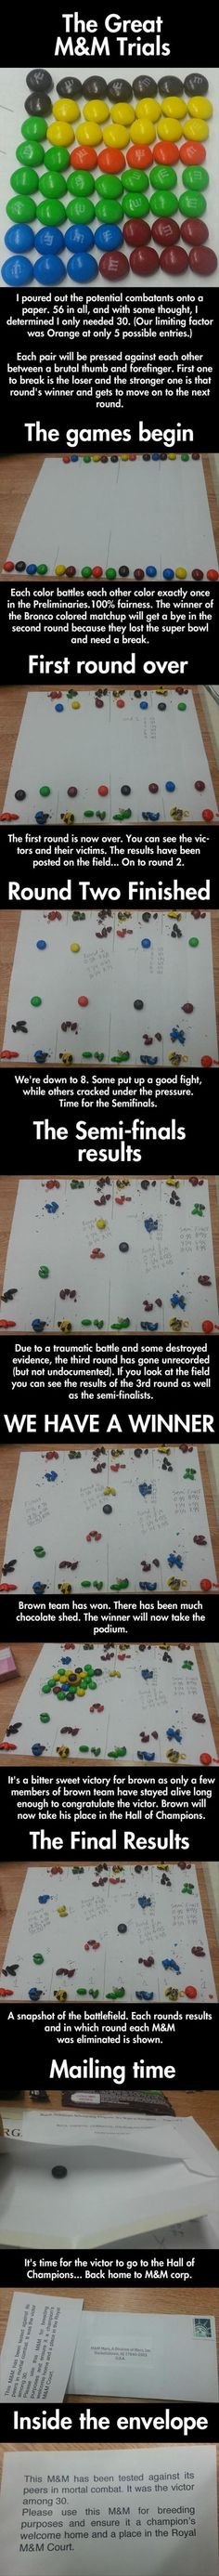 The Great M & M Trials